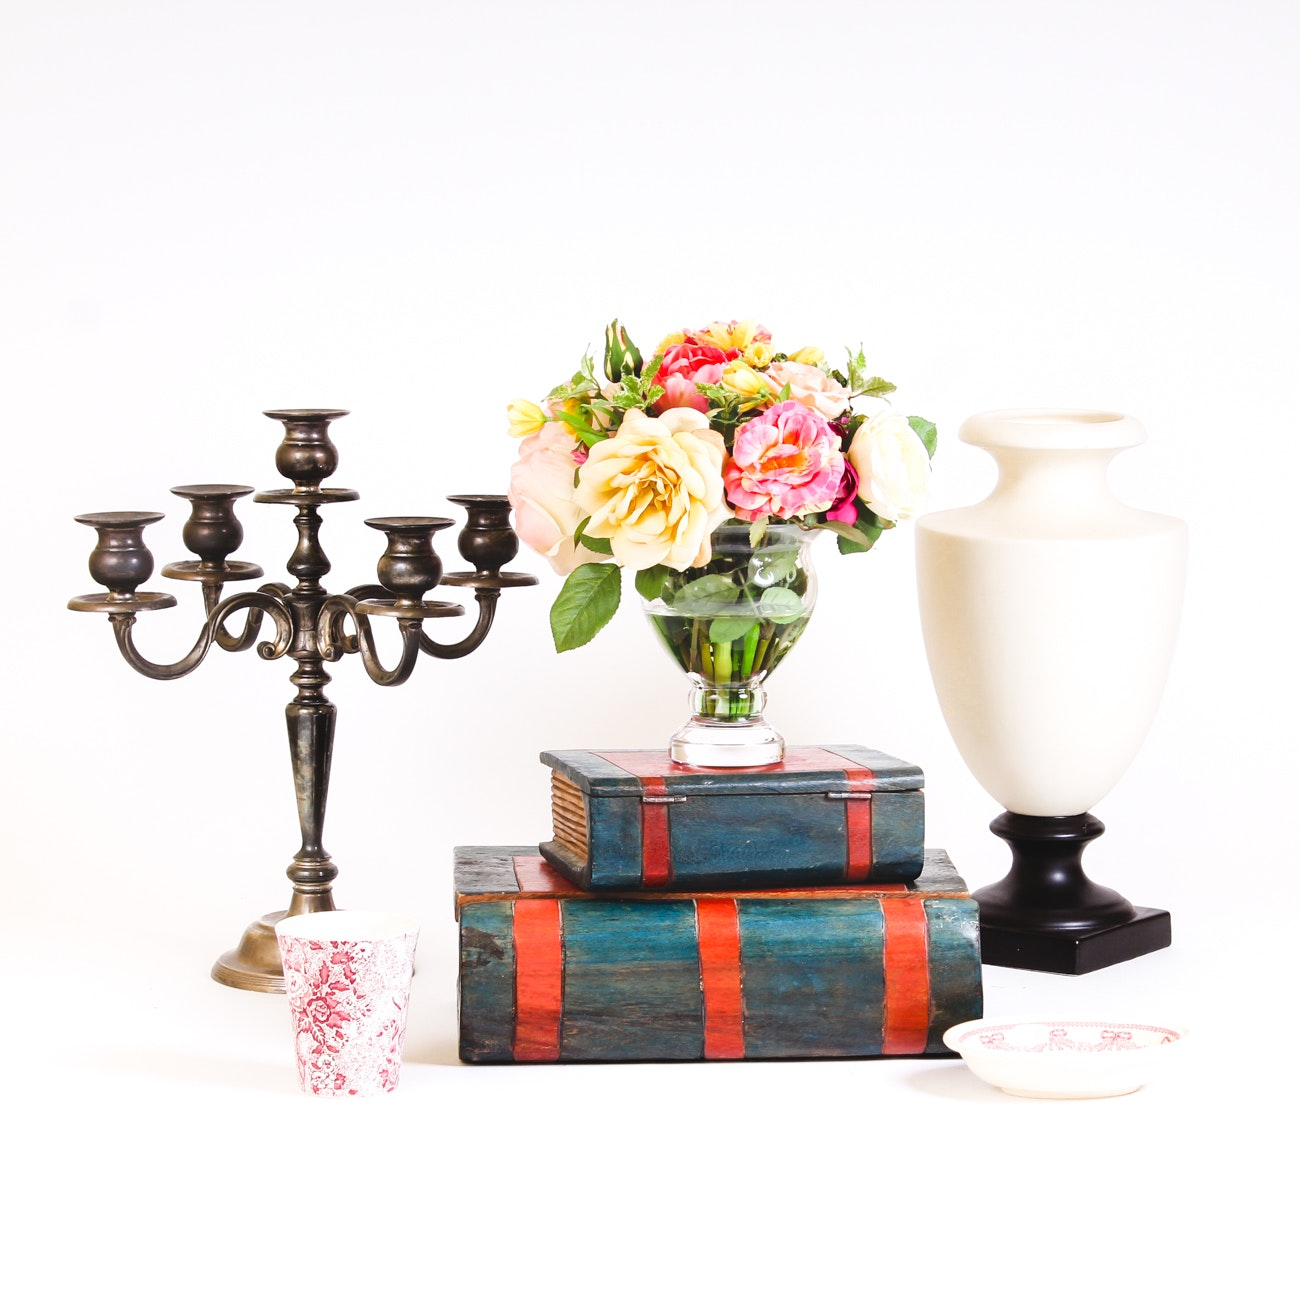 Decor Grouping Including Urn, Candelabra, Decorative Boxes and Other Decor